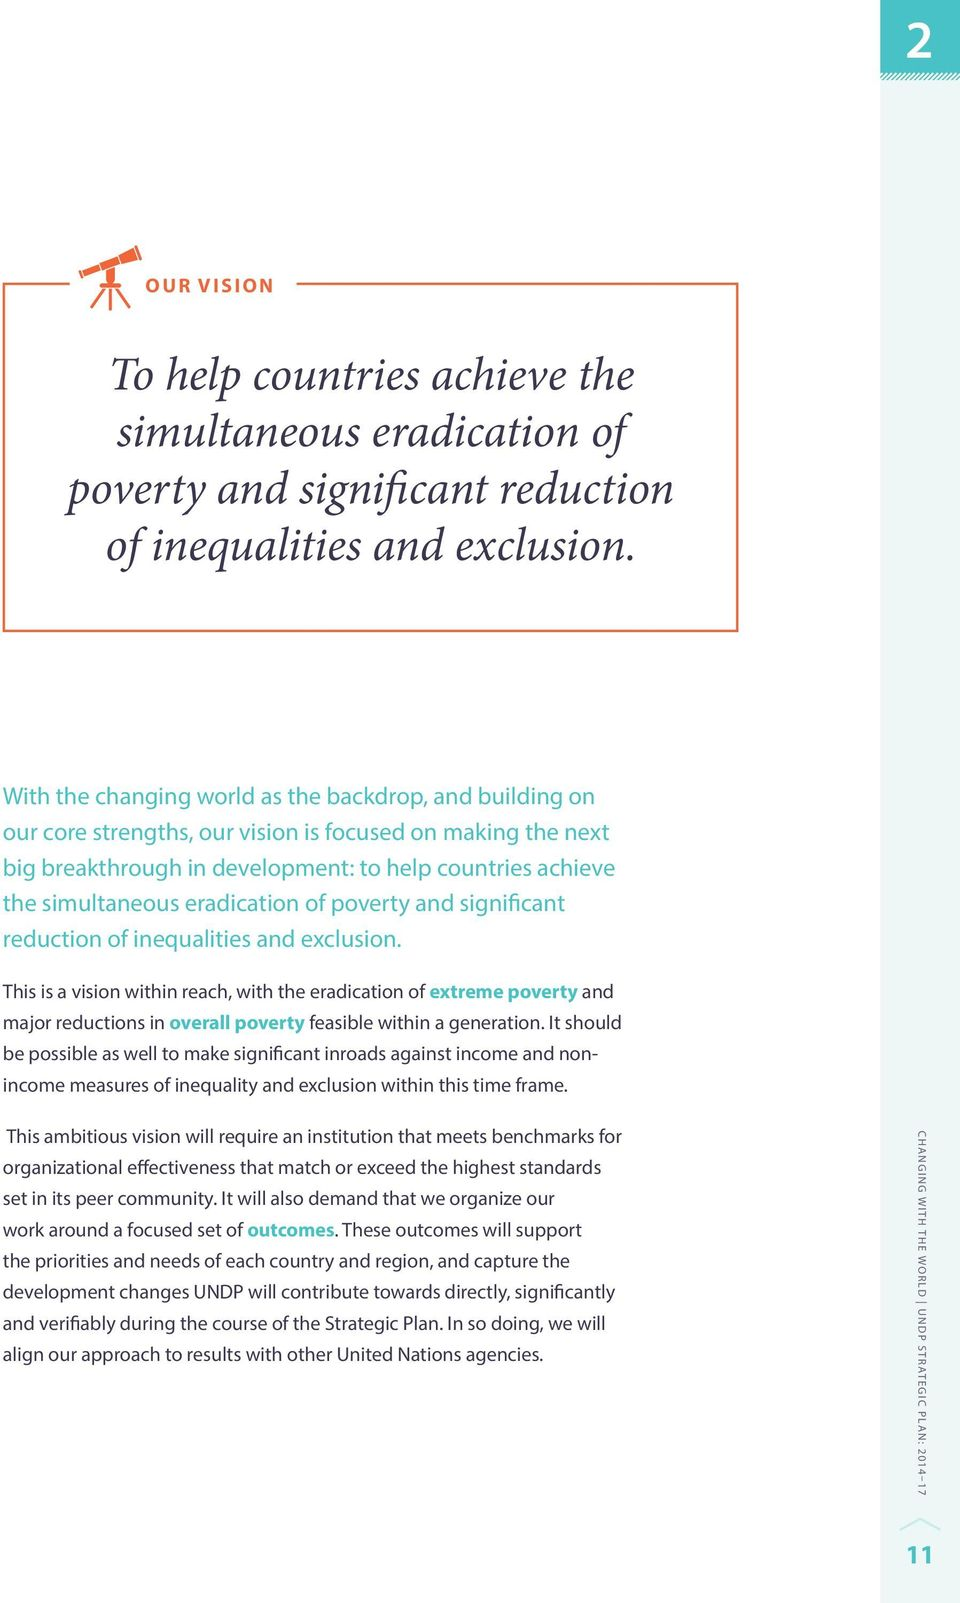 eradication of poverty and significant reduction of inequalities and exclusion.